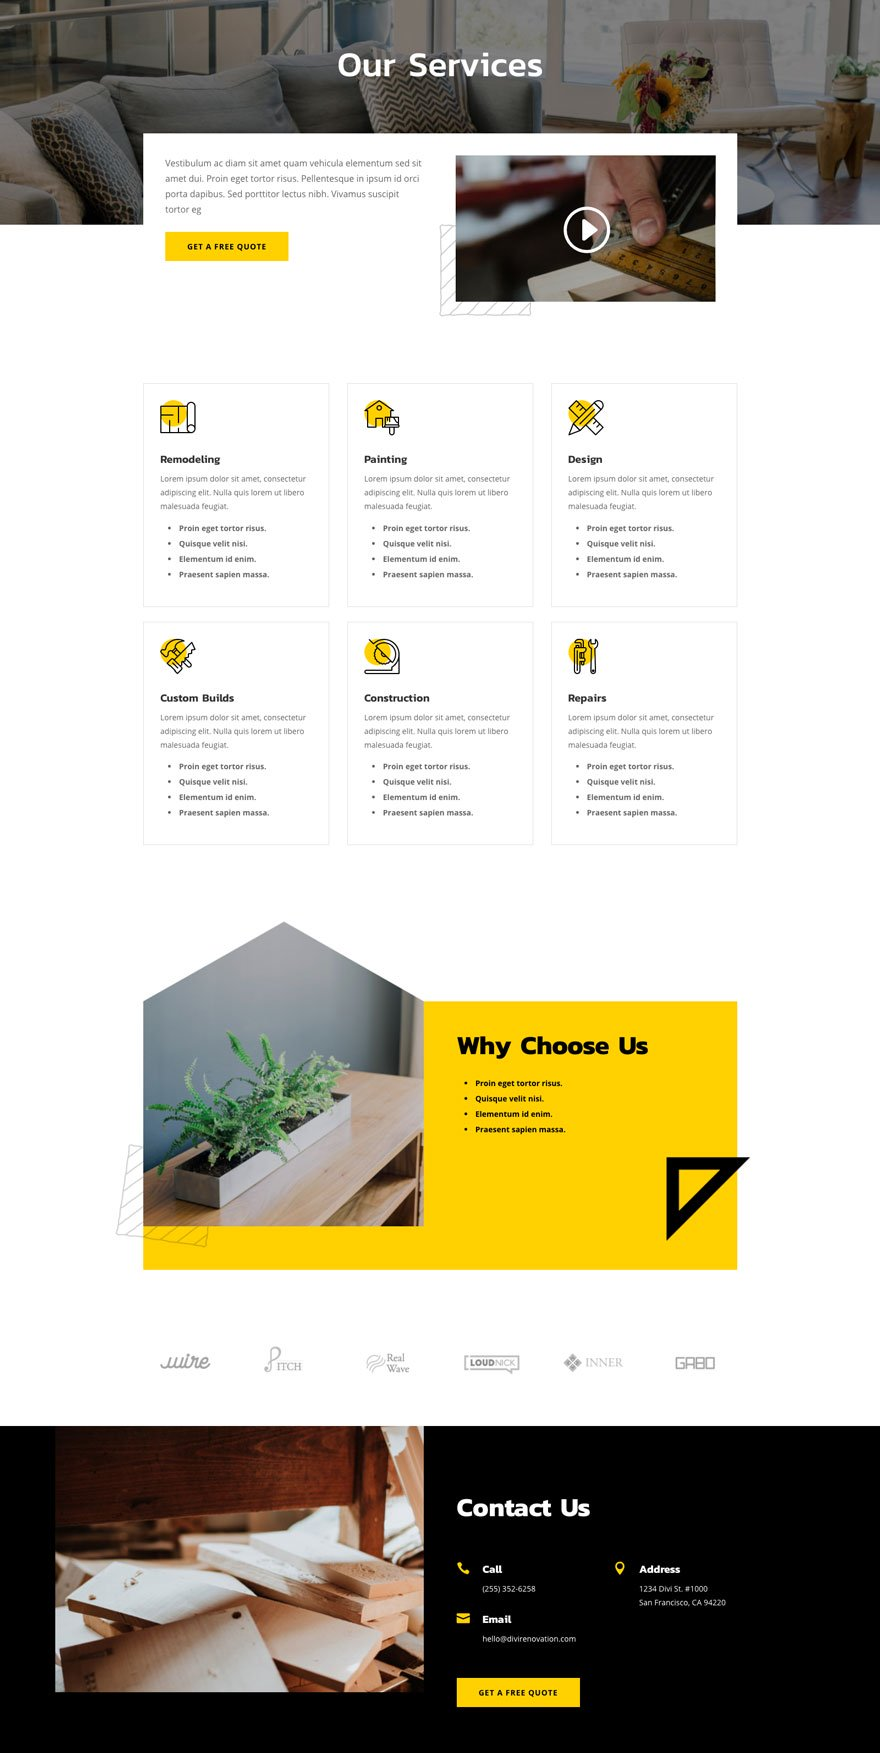 renovation services page - Renovation Divi Layout By Elegant Themes